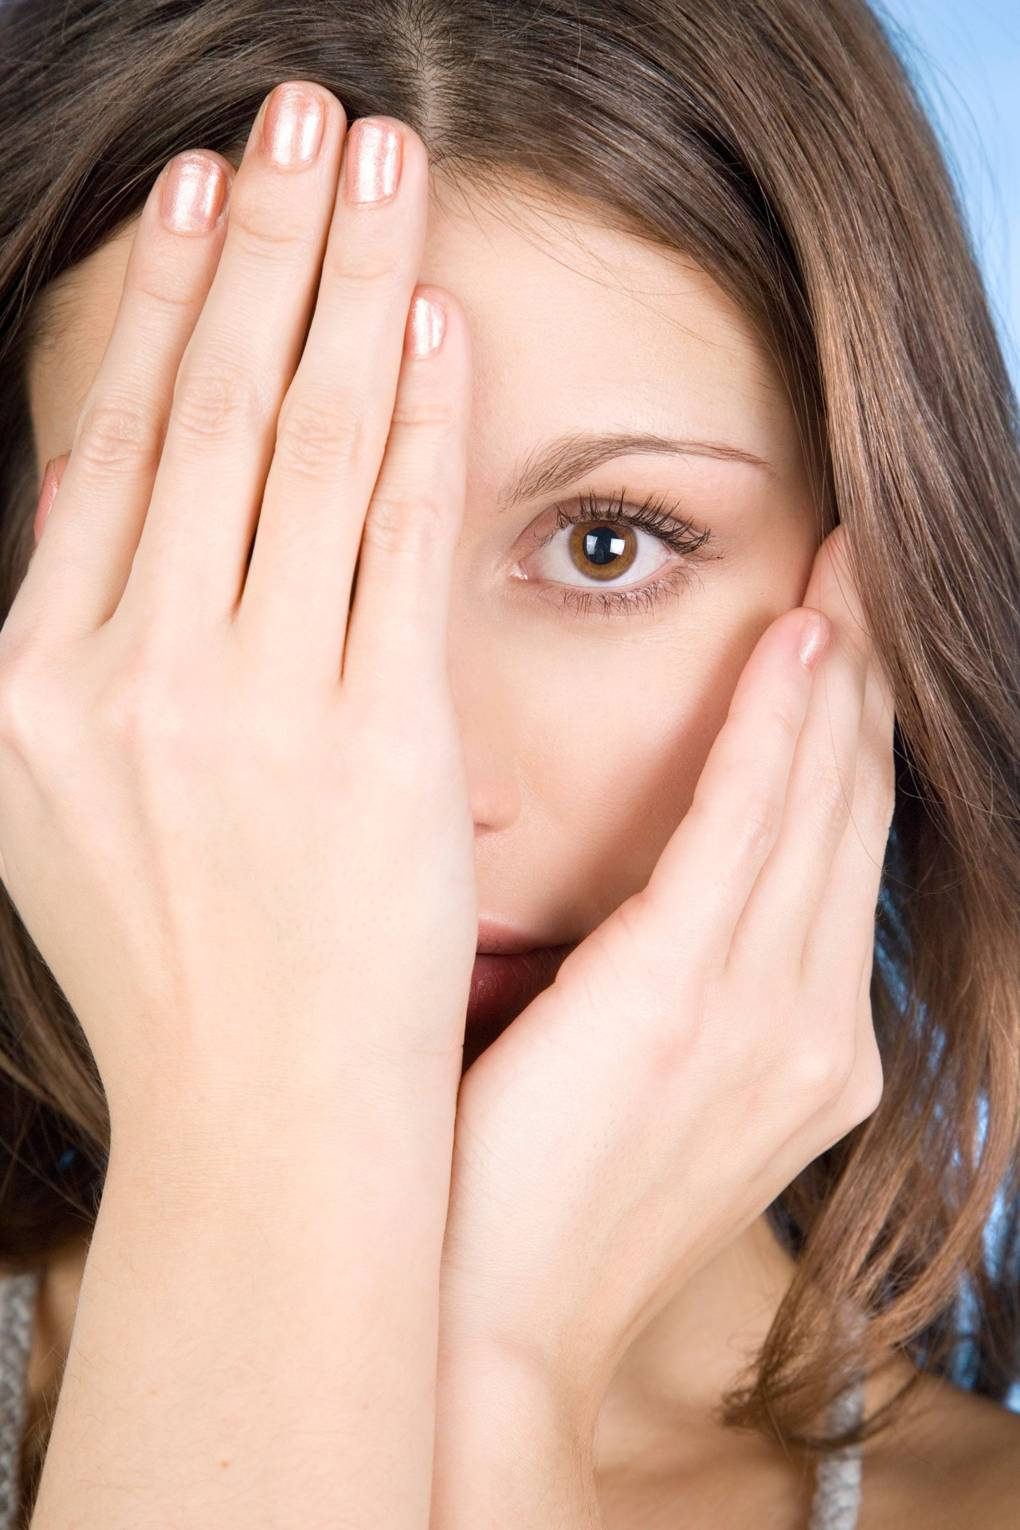 Adult acne and advice on dealing with bad skin on GLAMOUR com